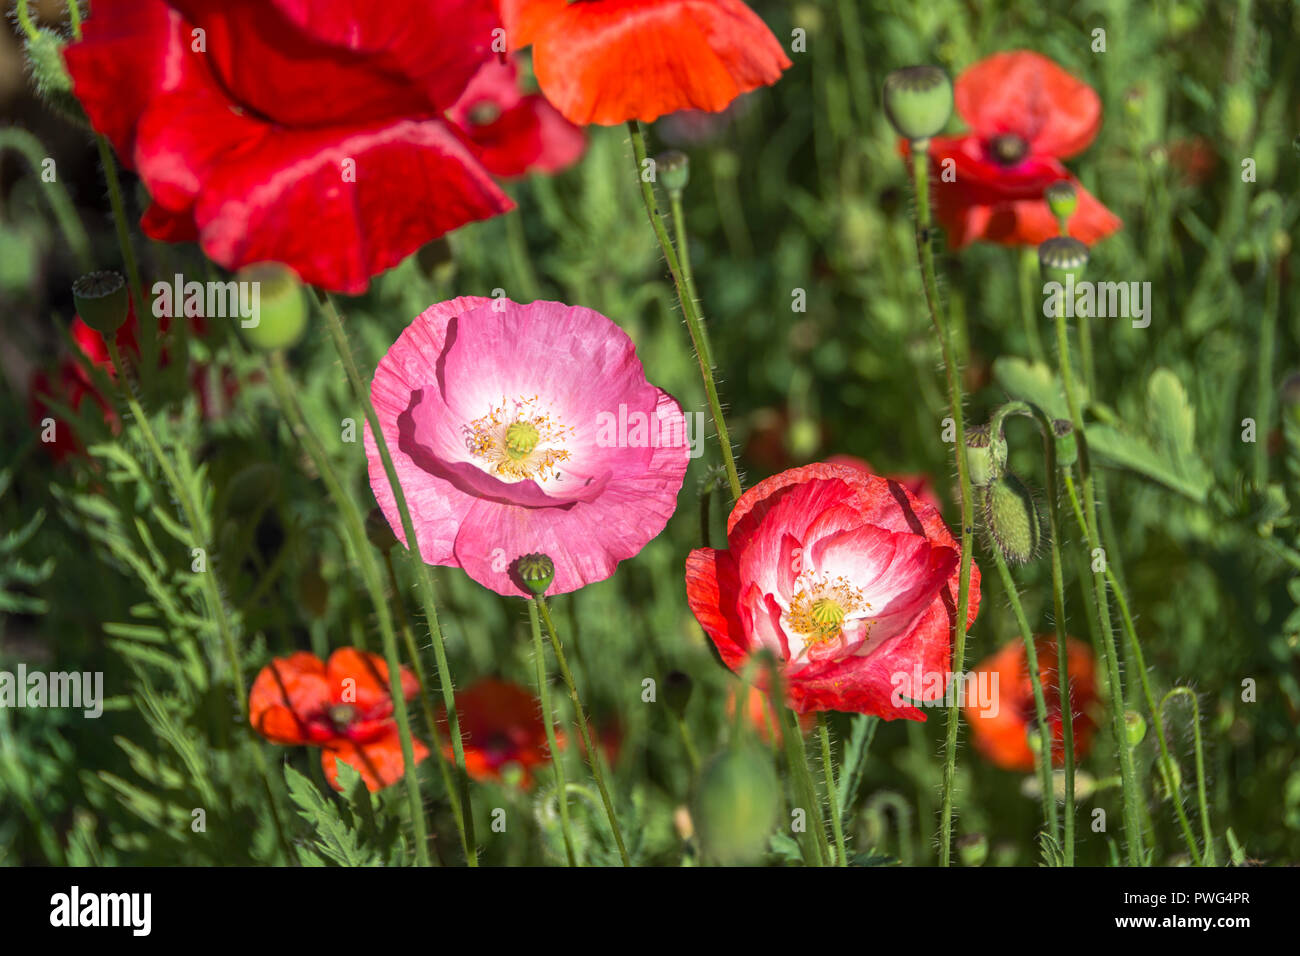 Poppy. Herbaceous plant with showy flowers - Stock Image